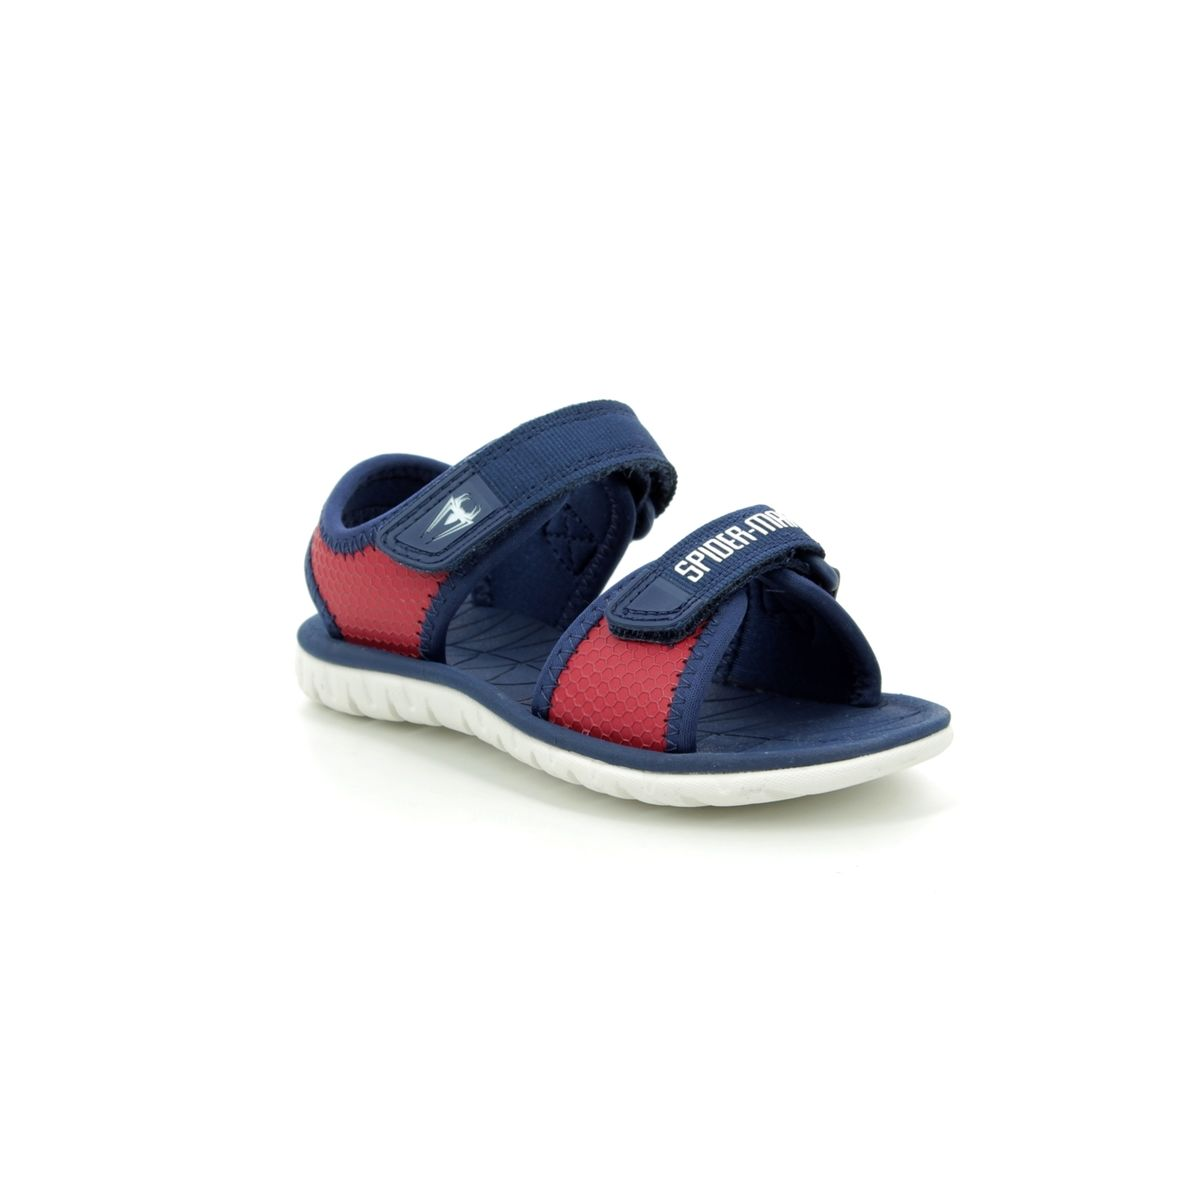 Clarks Sandals - Red multi - 423077G SURFING WEB T